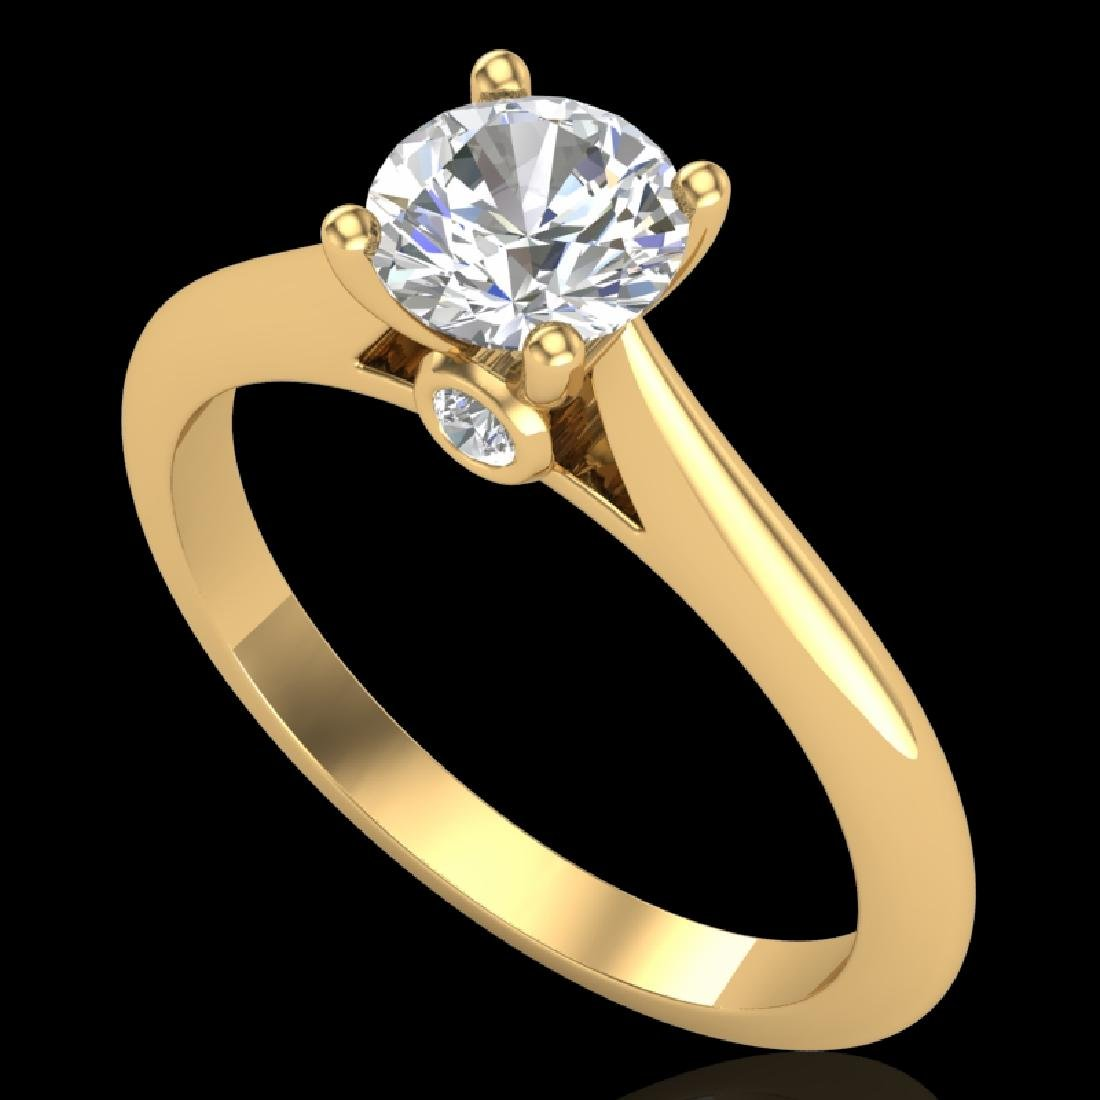 0.83 CTW VS/SI Diamond Solitaire Art Deco Ring 18K